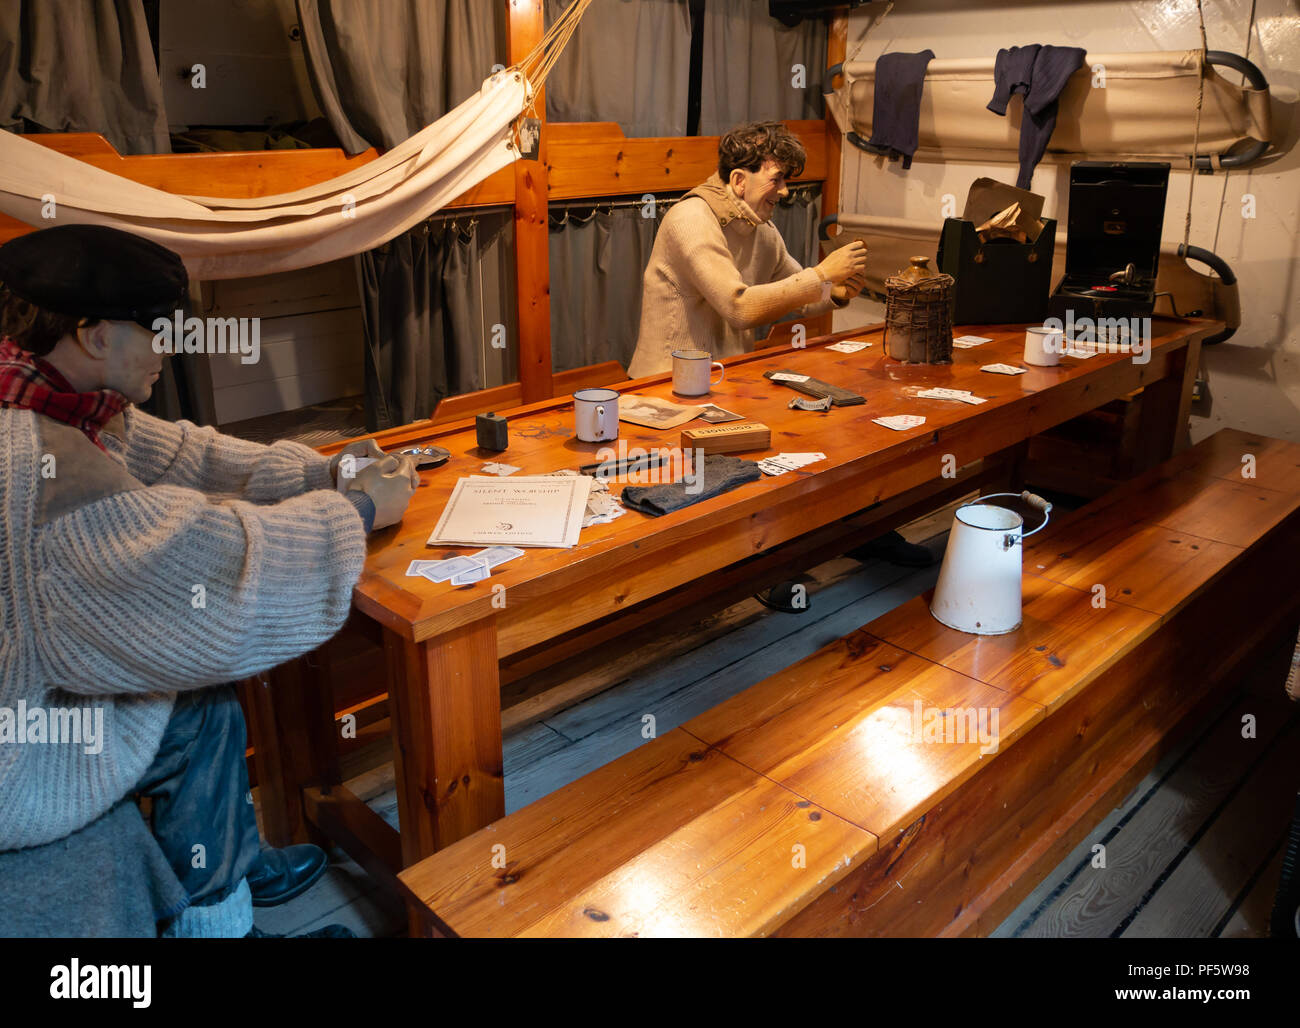 Mess room, RRS Discovery, Captain Scott's Antarctic ship, Discovery Point, Dundee, Scotland, UK - Stock Image